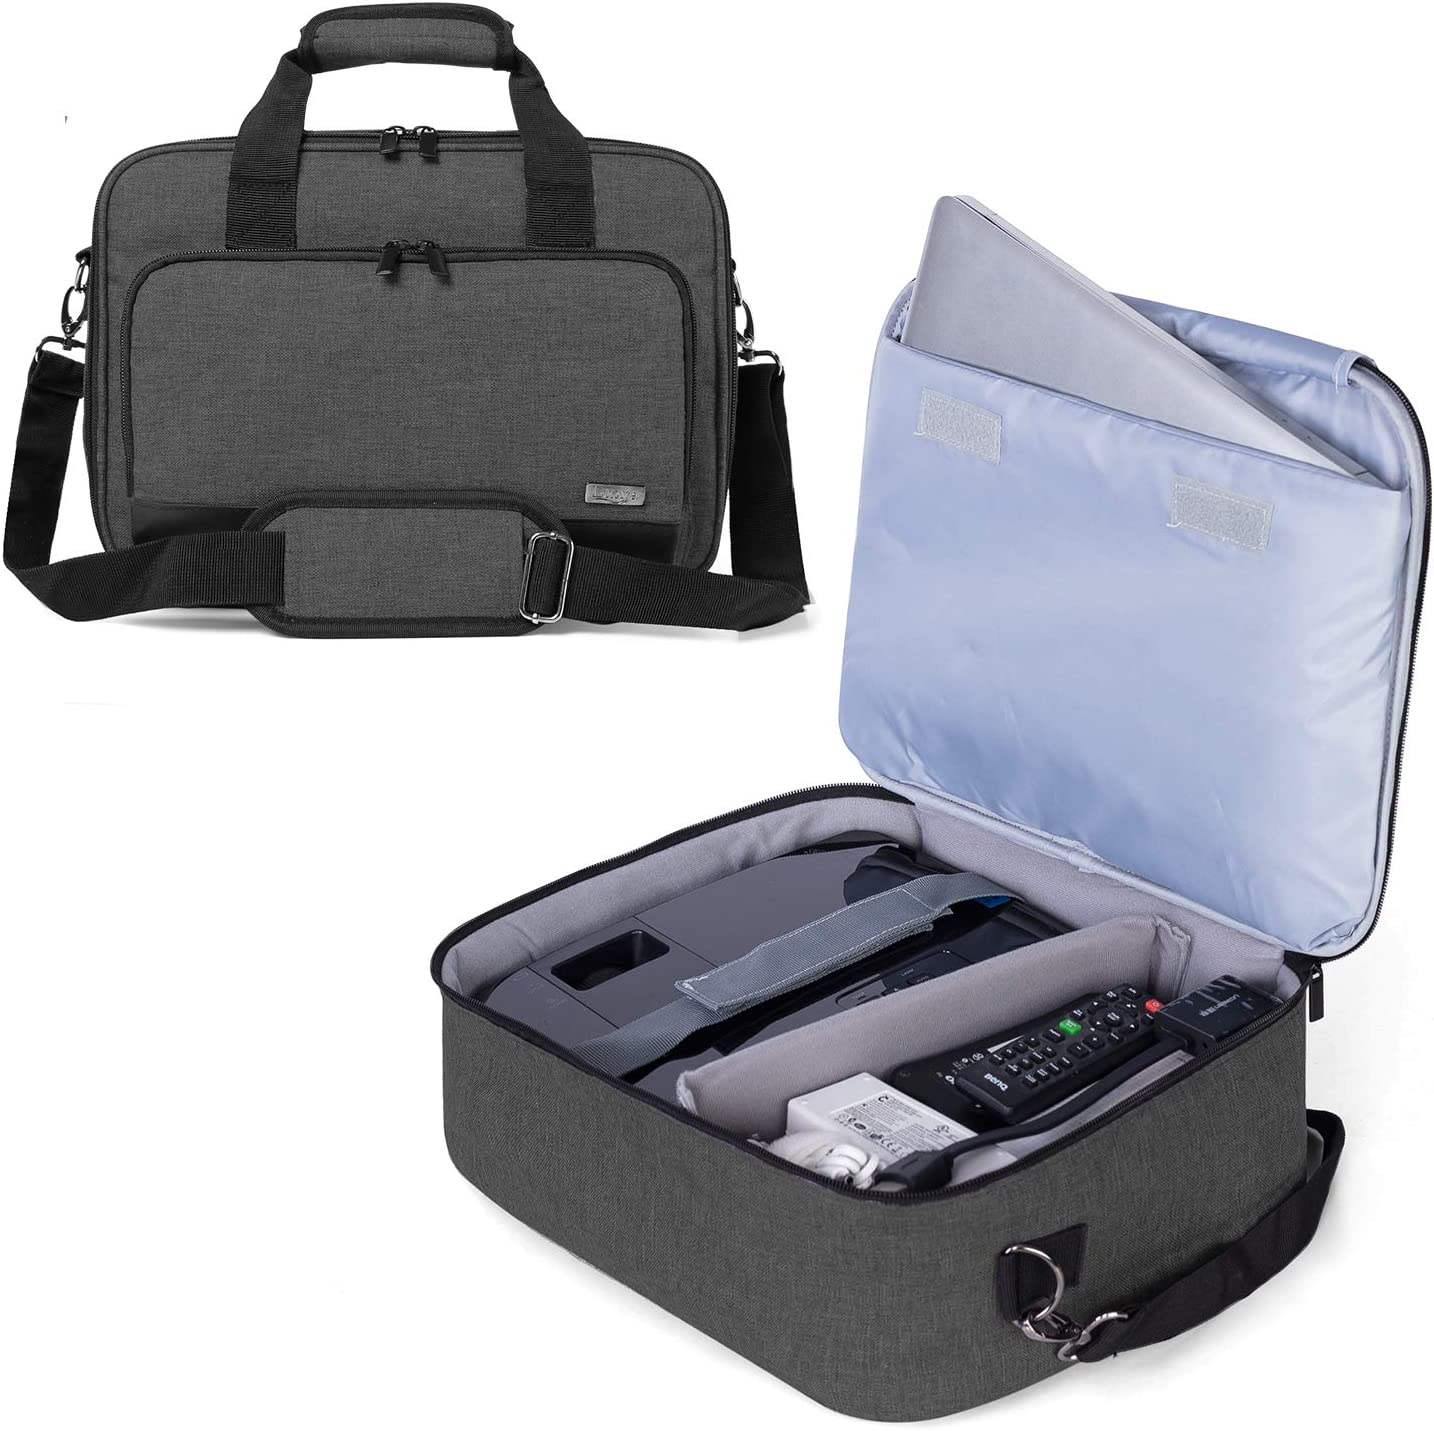 Luxja Projector Case, Projector Bag with Protective Laptop Sleeve, Projector Carrying Case with Accessories Pockets, Large(16 x 11.5 x 5.75 Inches), Black